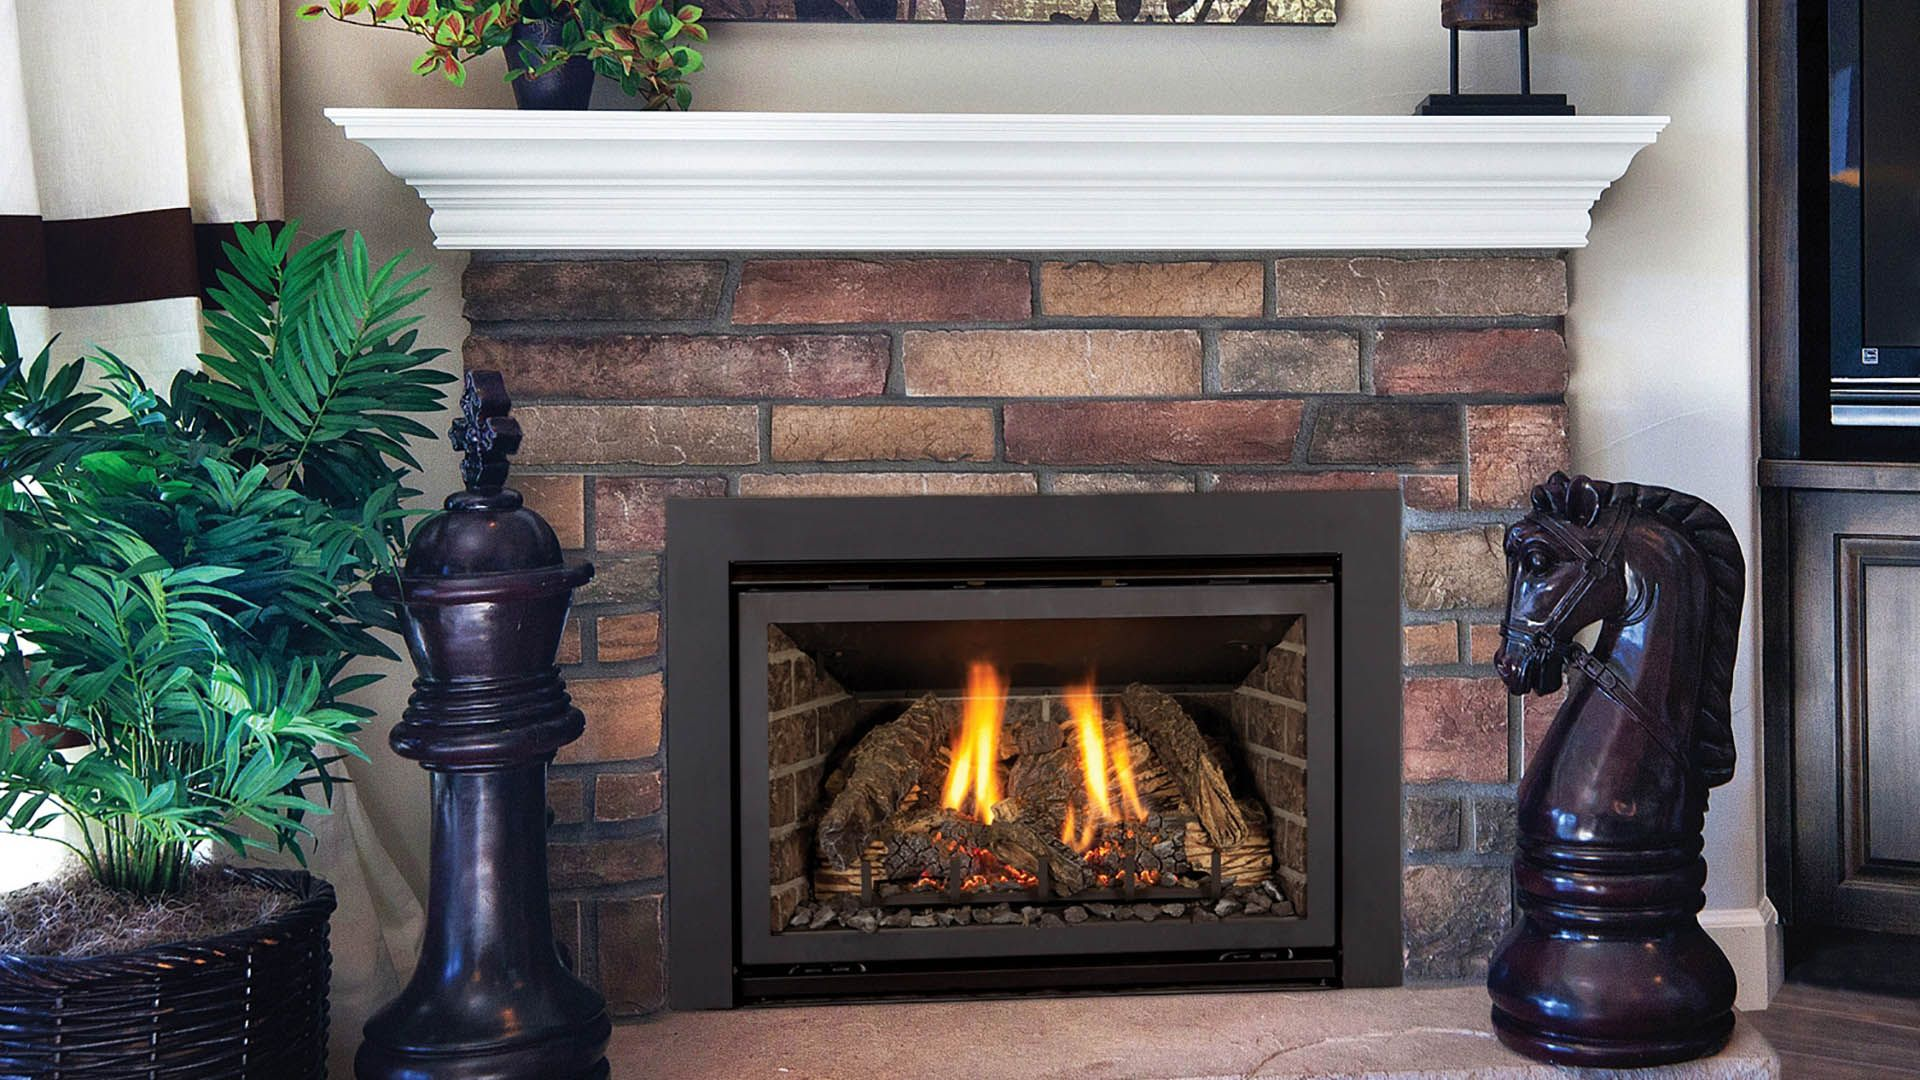 16 Wiring Diagram For Electric Fireplace Heater Electric